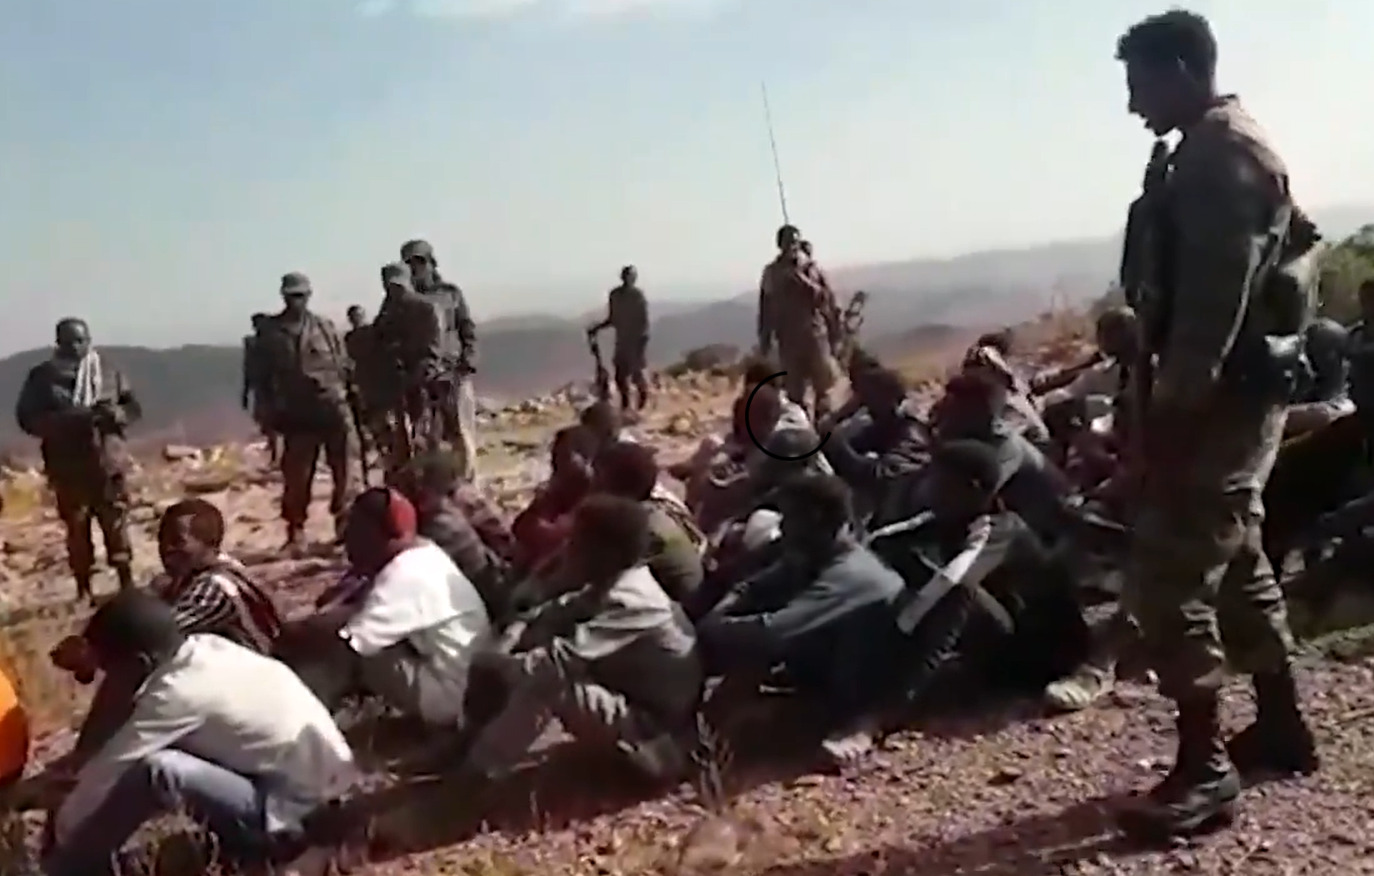 Ethiopia VS CNN: Video Of Horrific Executions In Tigray Spreads Online